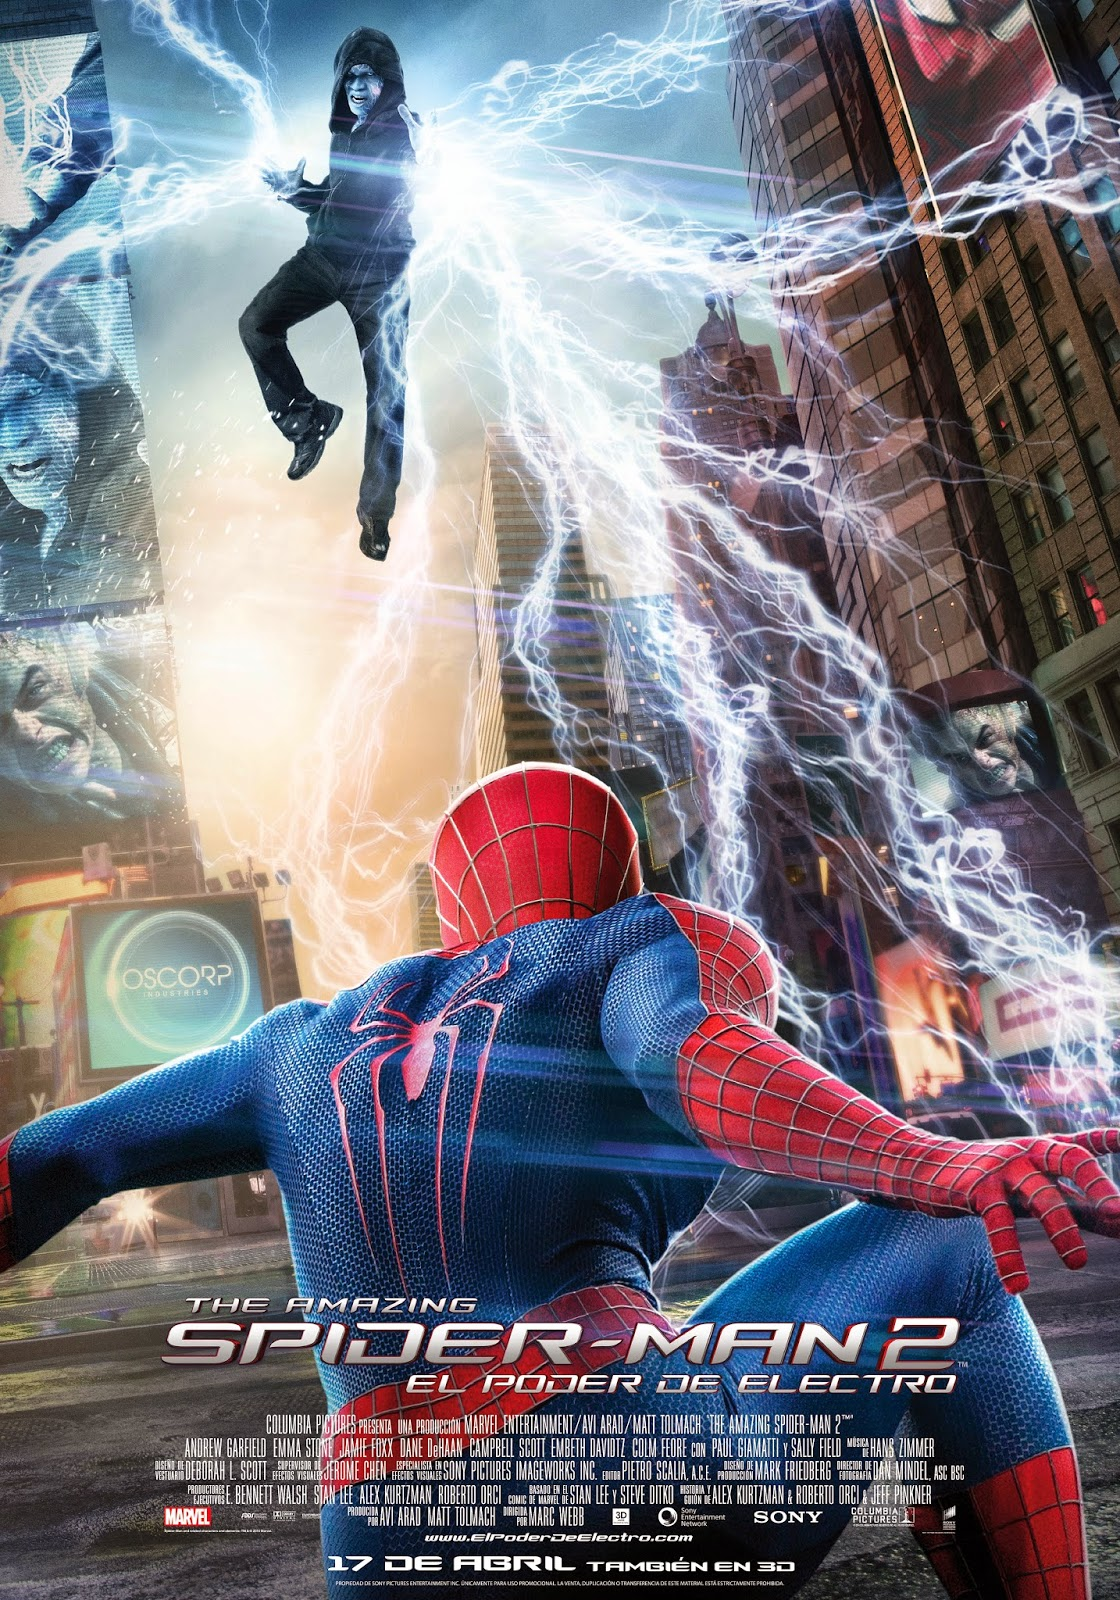 the-amazing-spider-man-2-el-poder-de-electro